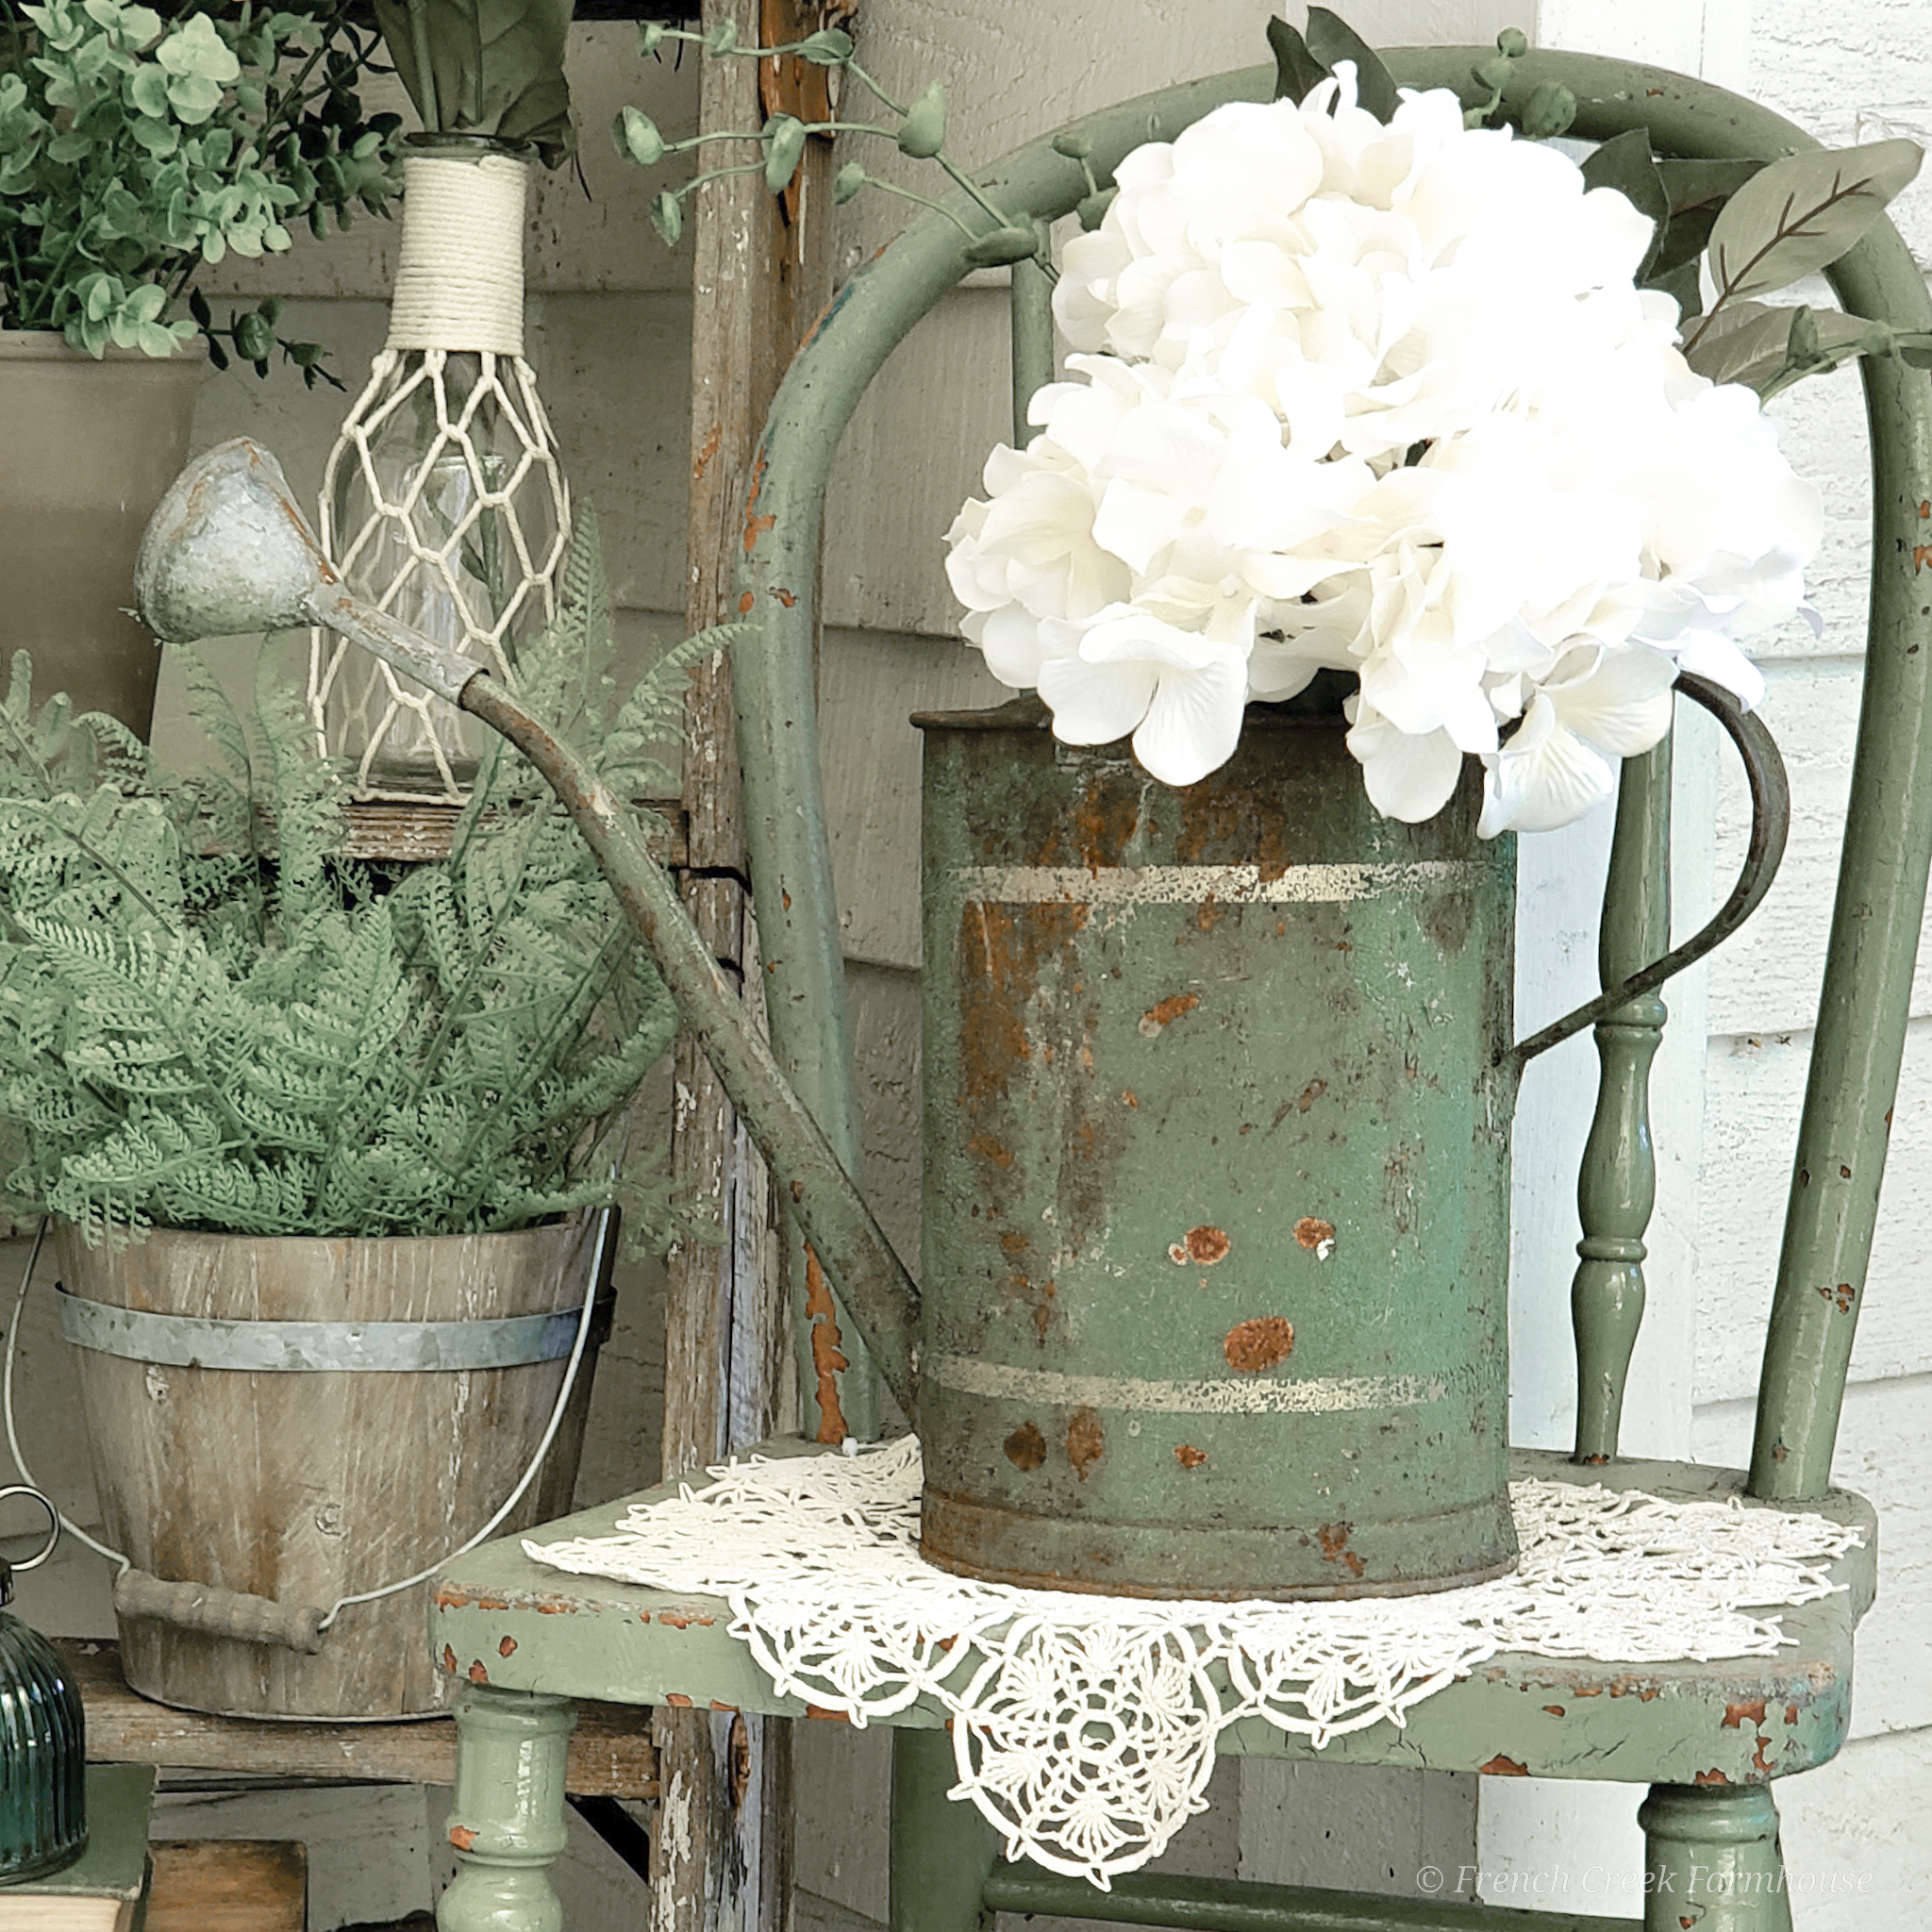 Come along for our spring home tour as we share our vintage French inspired front porch